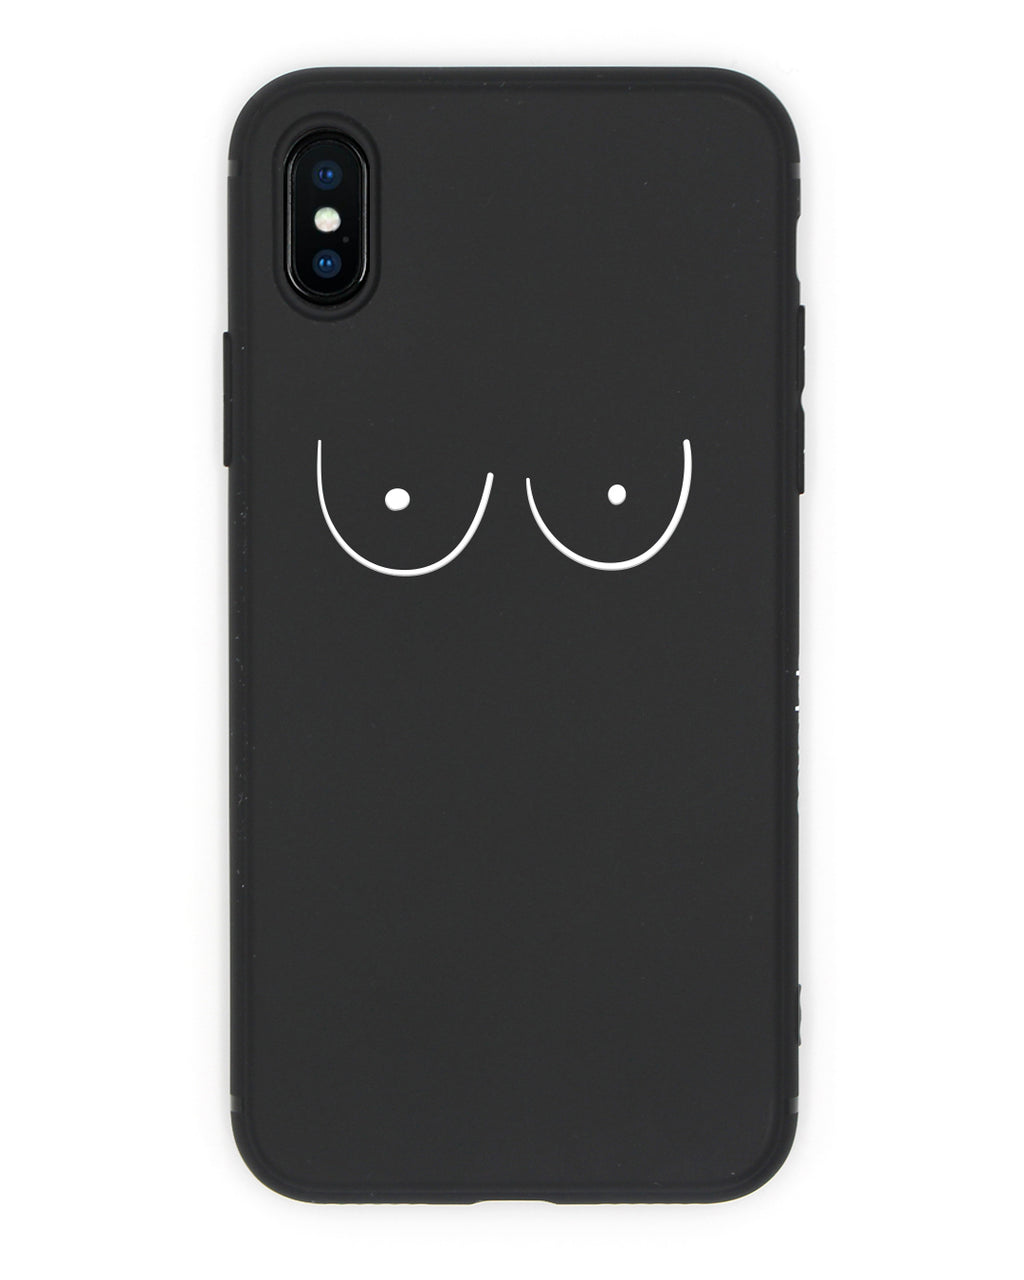 Tits iPhone Case - Coverlab